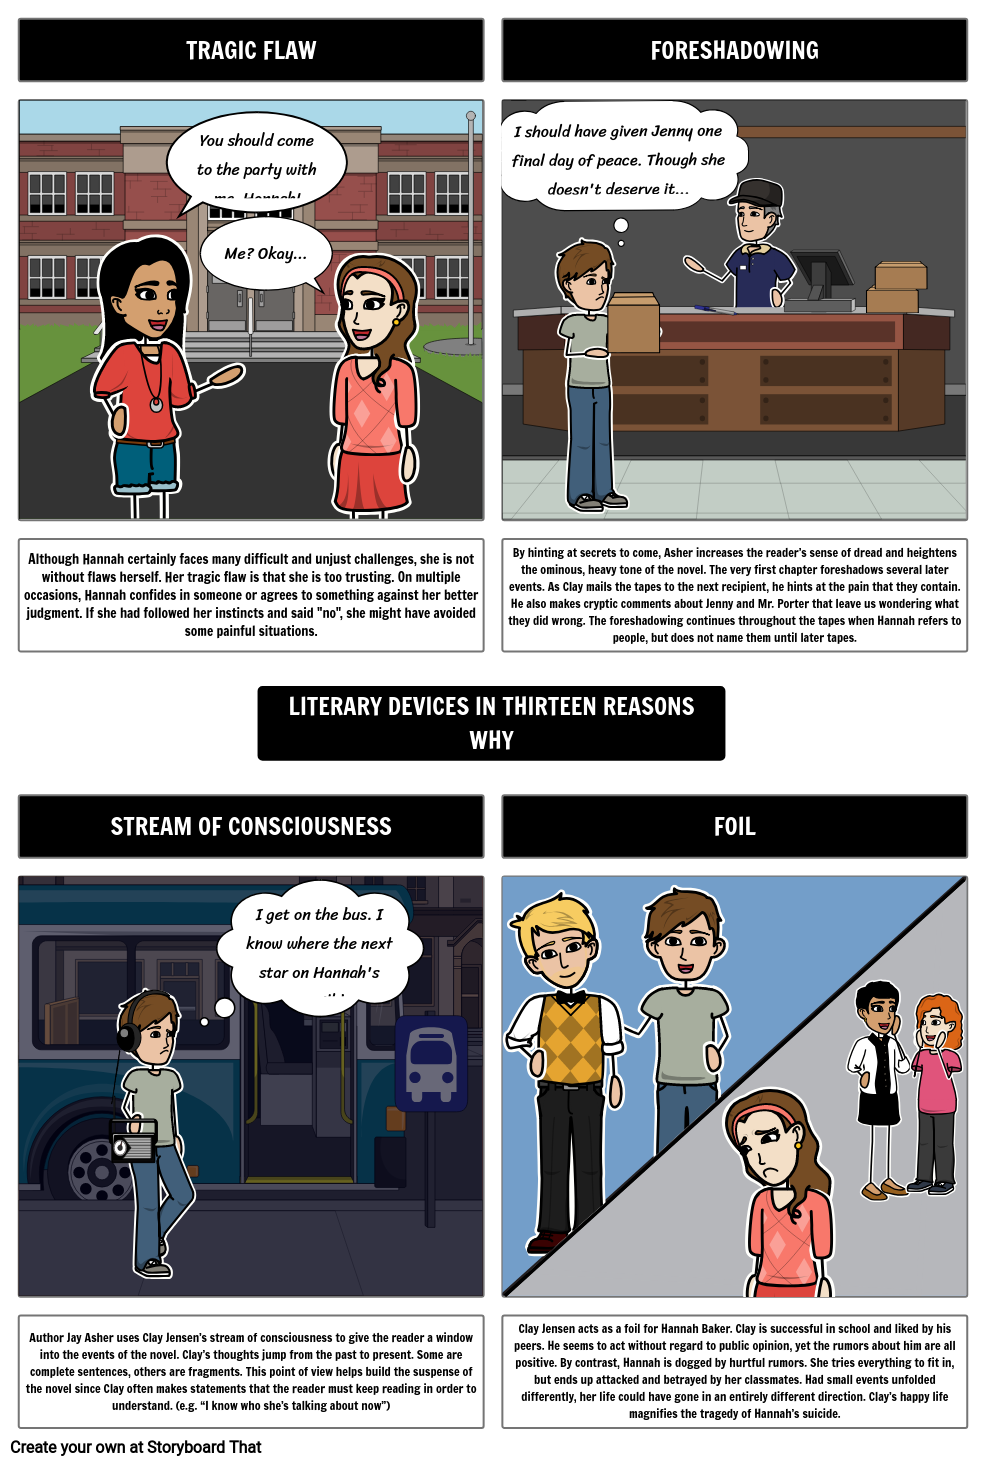 Thirteen Reasons Why Literary Devices